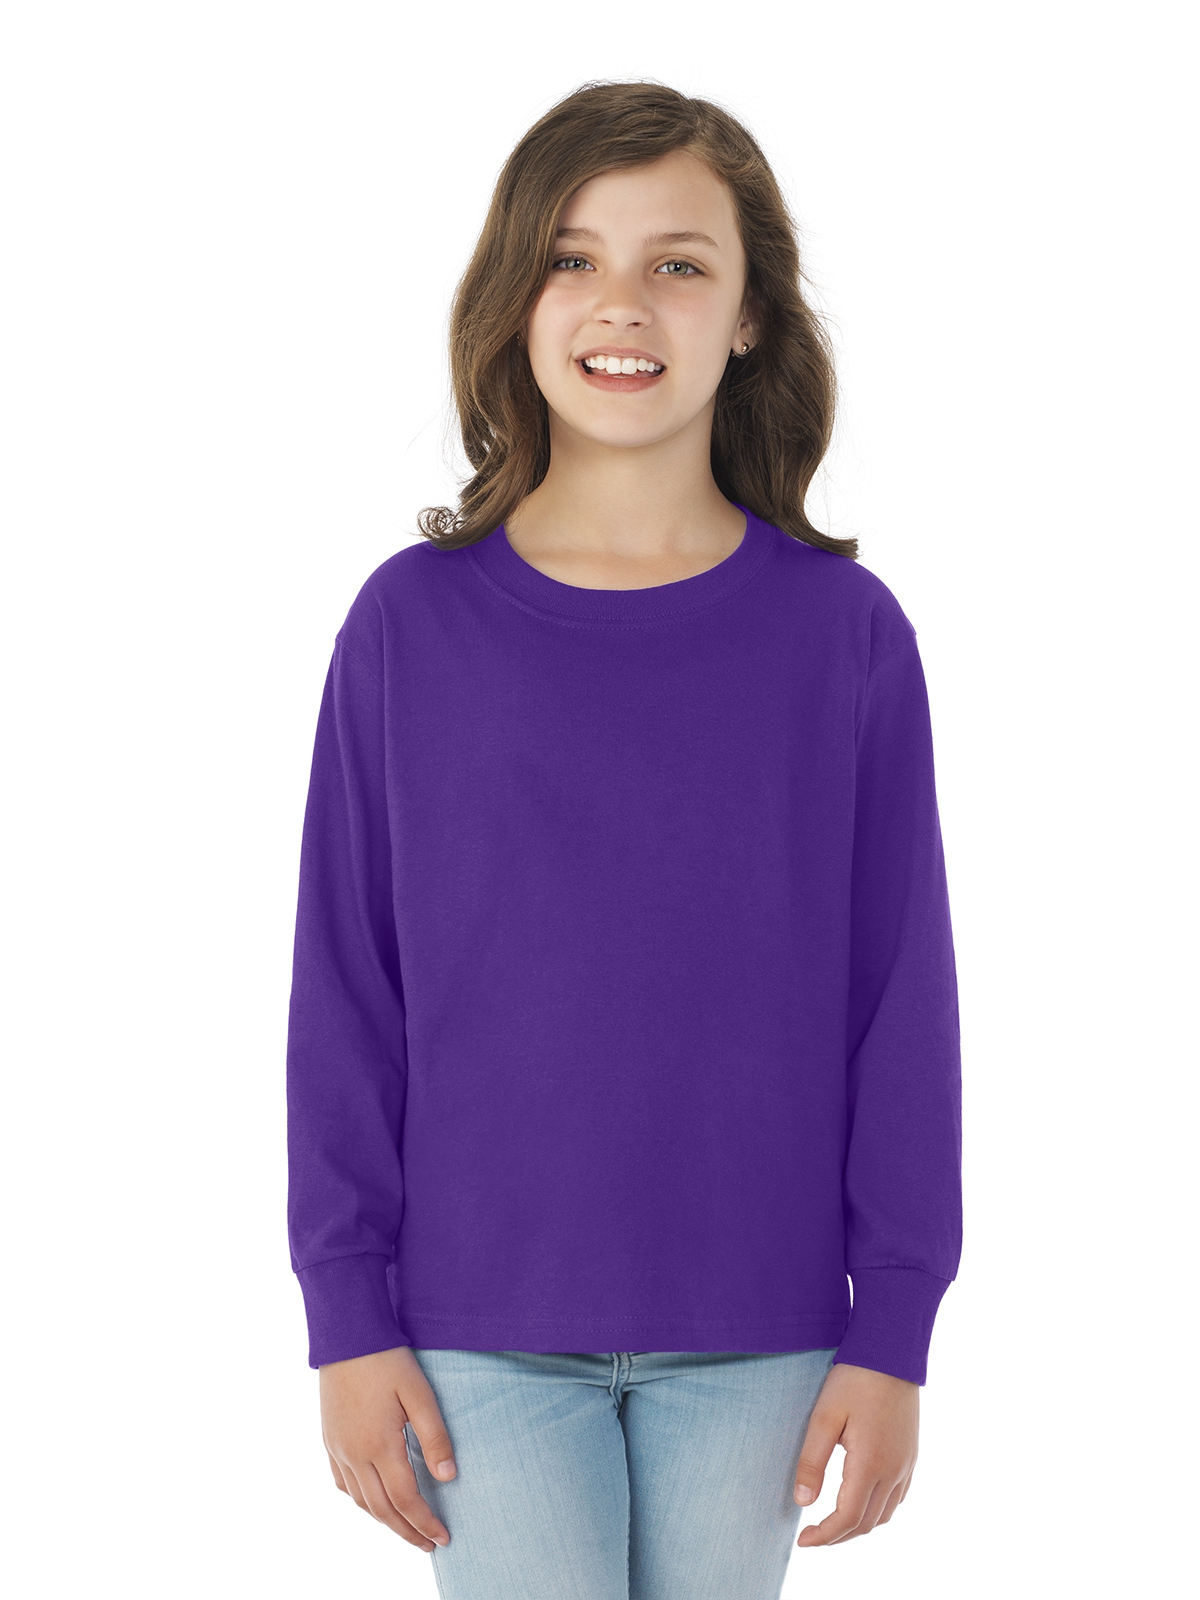 Fruit of the Loom 4930BR HD Cotton™ Youth Long-Sleeve T-Shirt